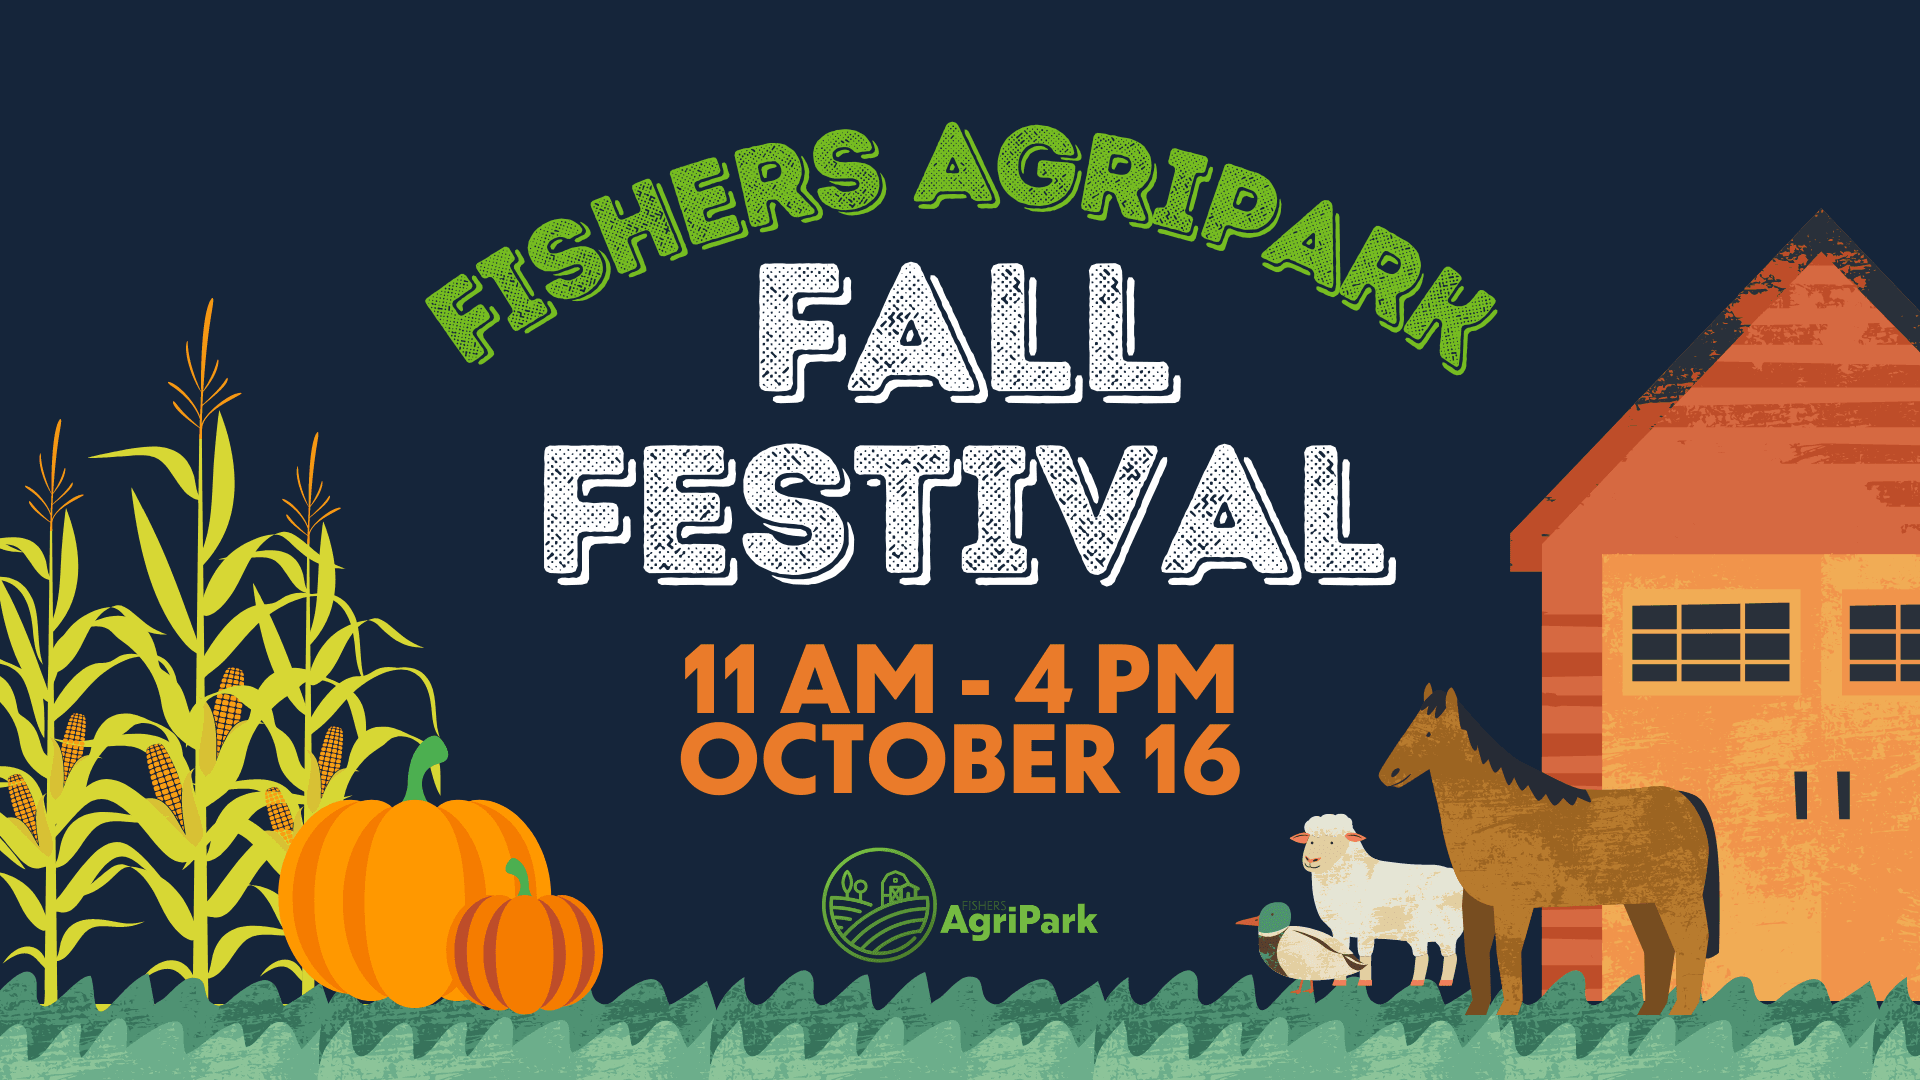 fishers agirpark fall festival. 11 am - 4 pm. october 16